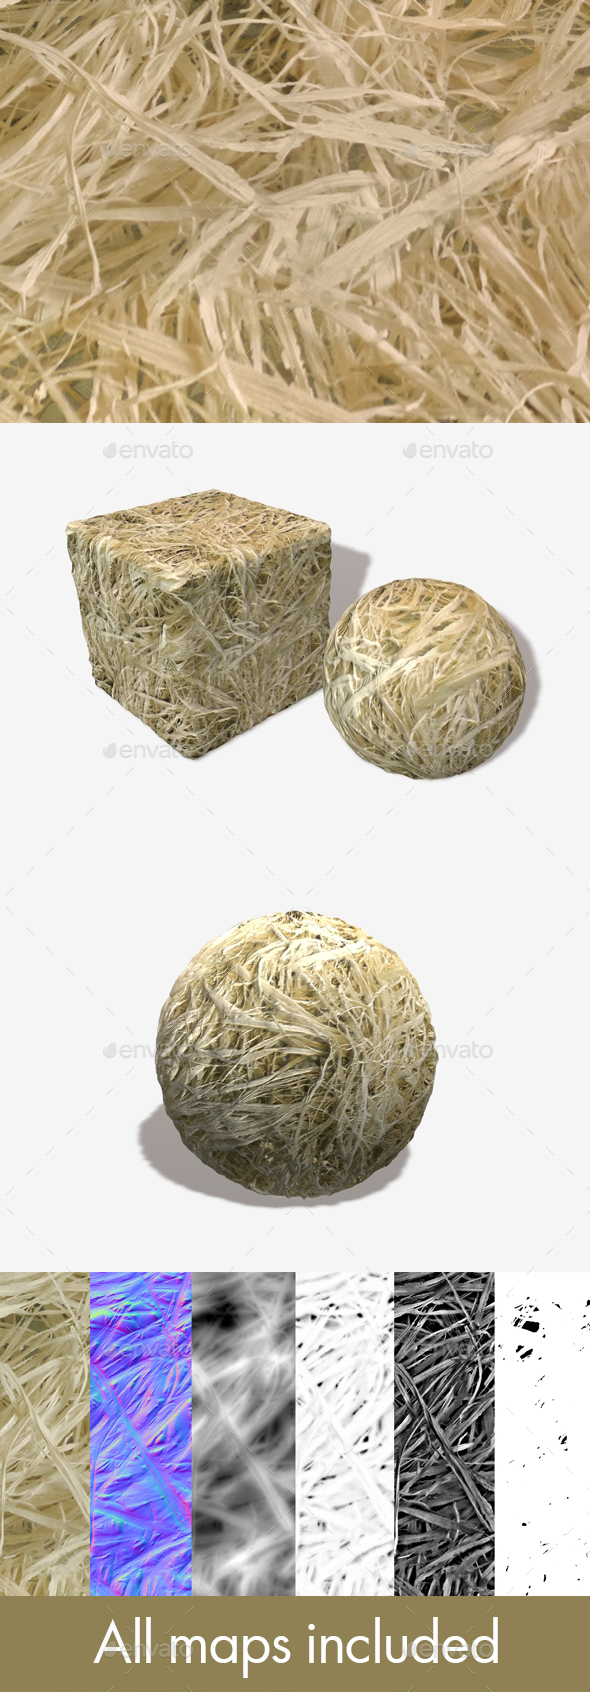 3DOcean Dry Straw Seamless Texture 15514369